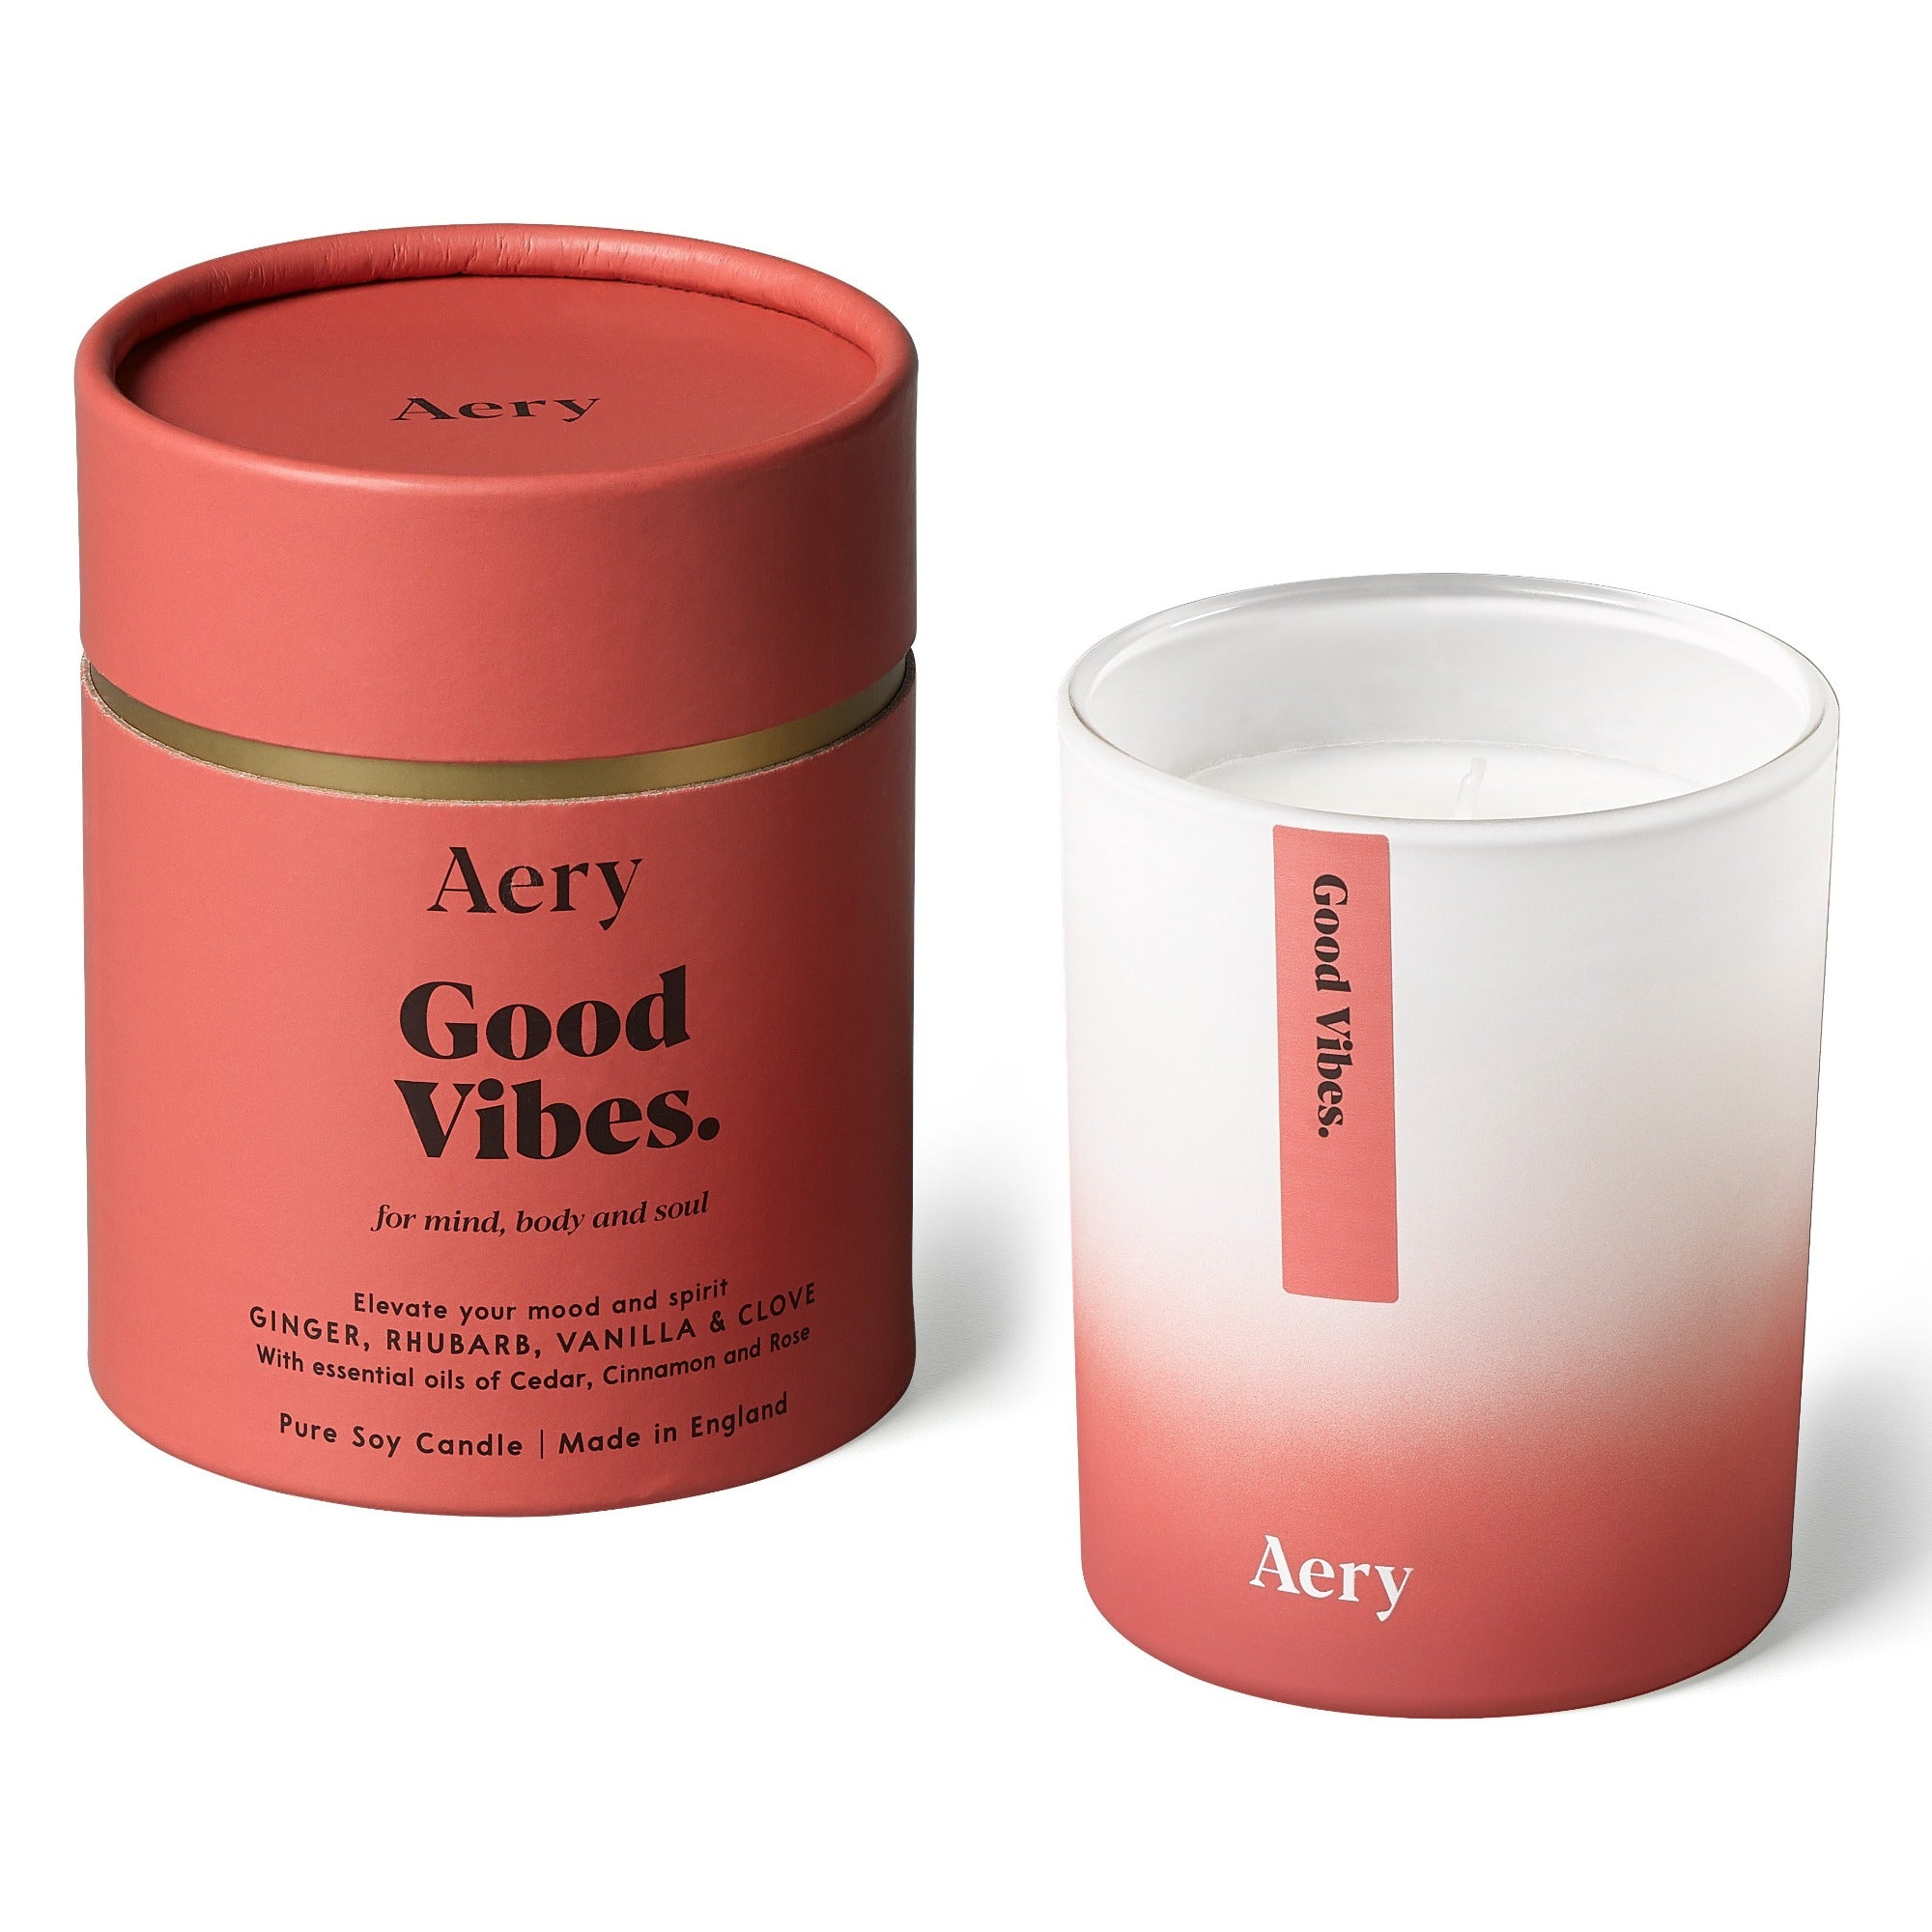 Aery Good Vibes Aromatherapy scented candle - Ginger Rhubarb Vanilla Clove - 200 gr - Pure soy wax